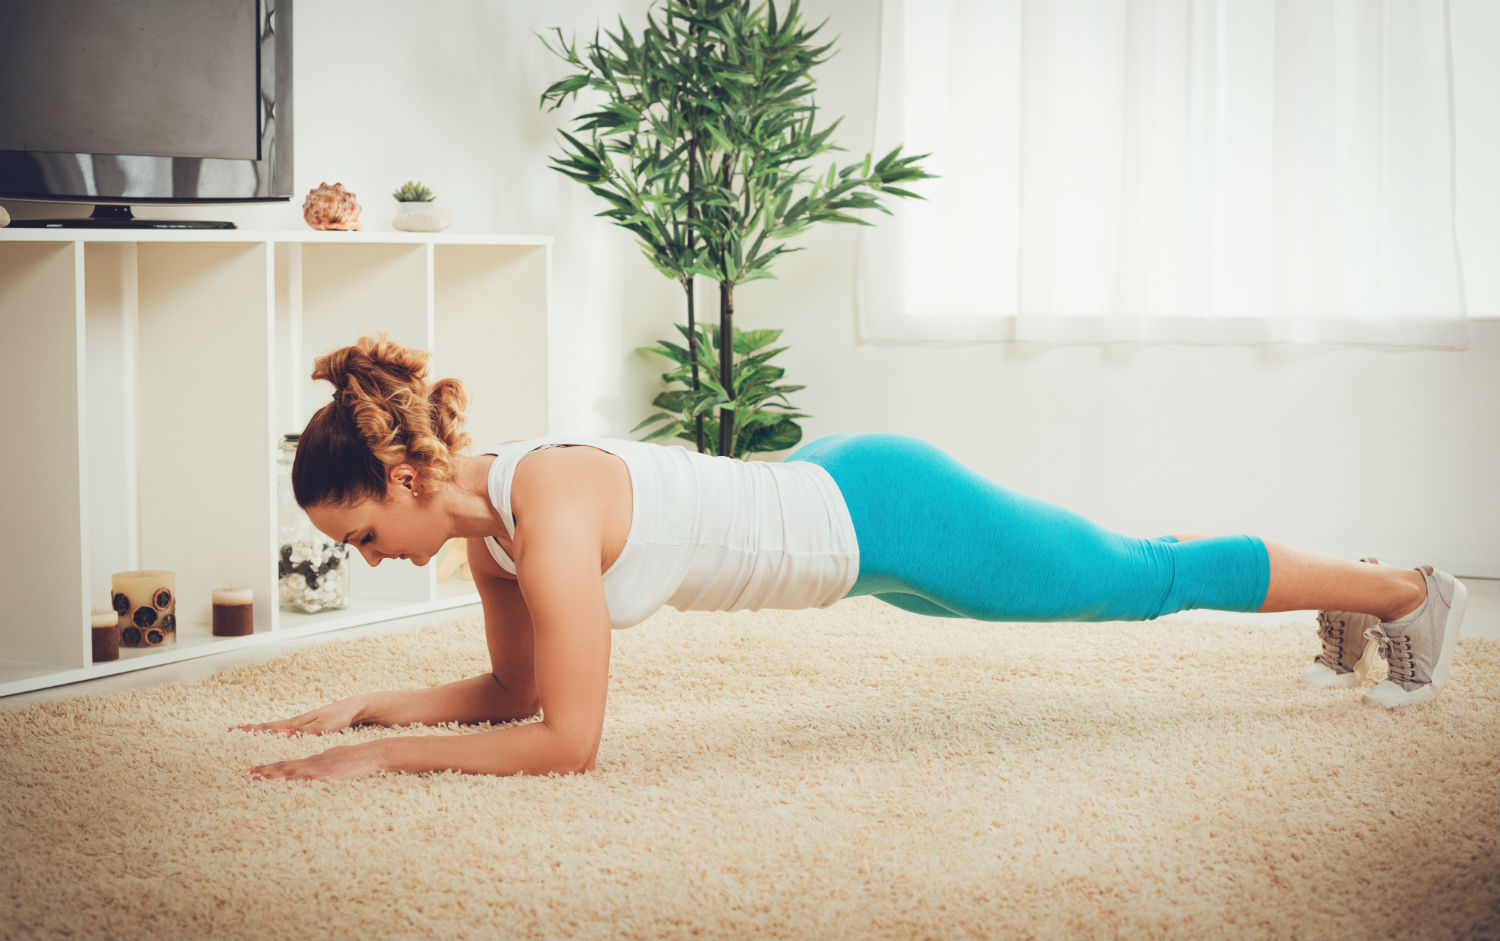 6 Easy Exercises To Do At Home